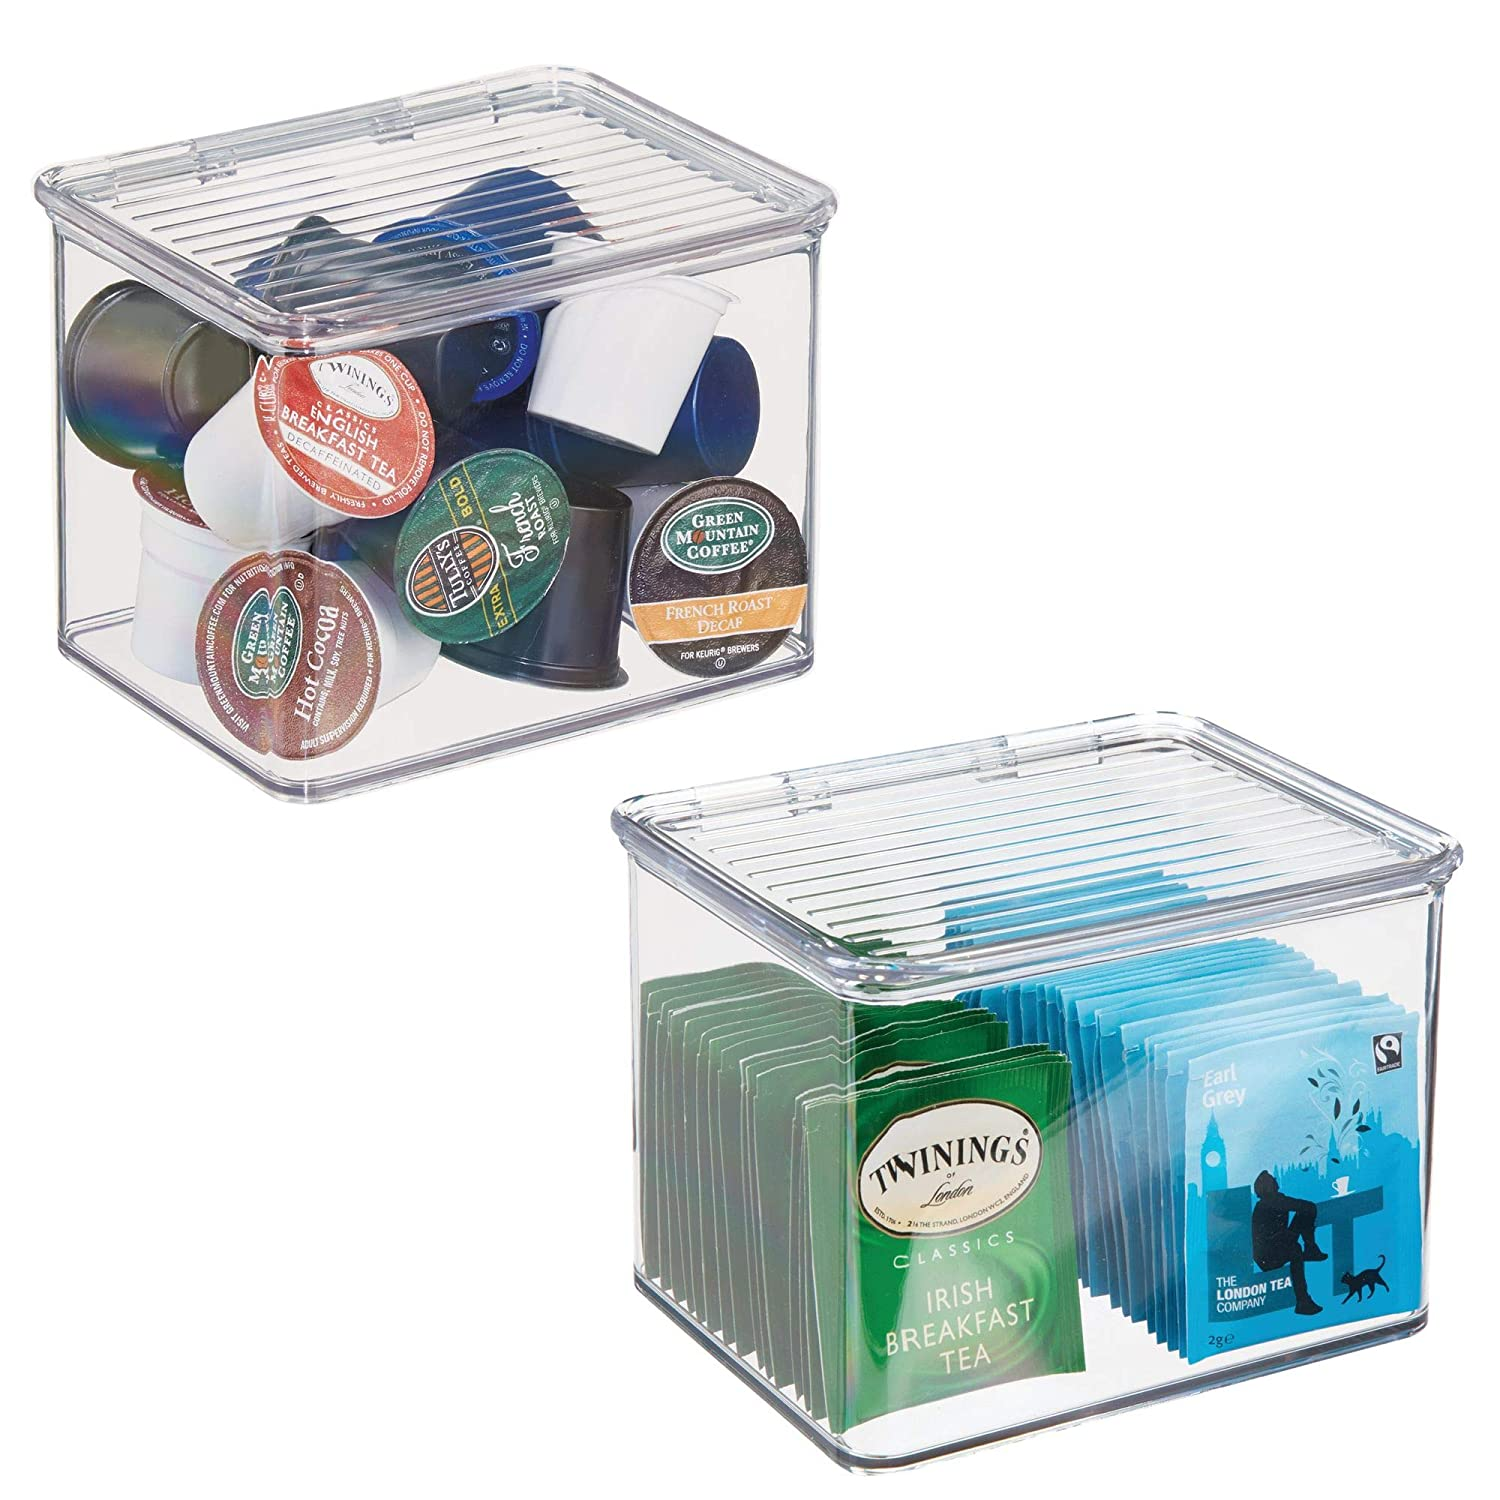 mDesign Plastic Stackable Kitchen Pantry Cabinet or Refrigerator Food Storage Container Bin, Attached Hinged Lid - Organizer for Snacks, Produce, Pasta - BPA Free - Deep Container - 2 Pack - Clear